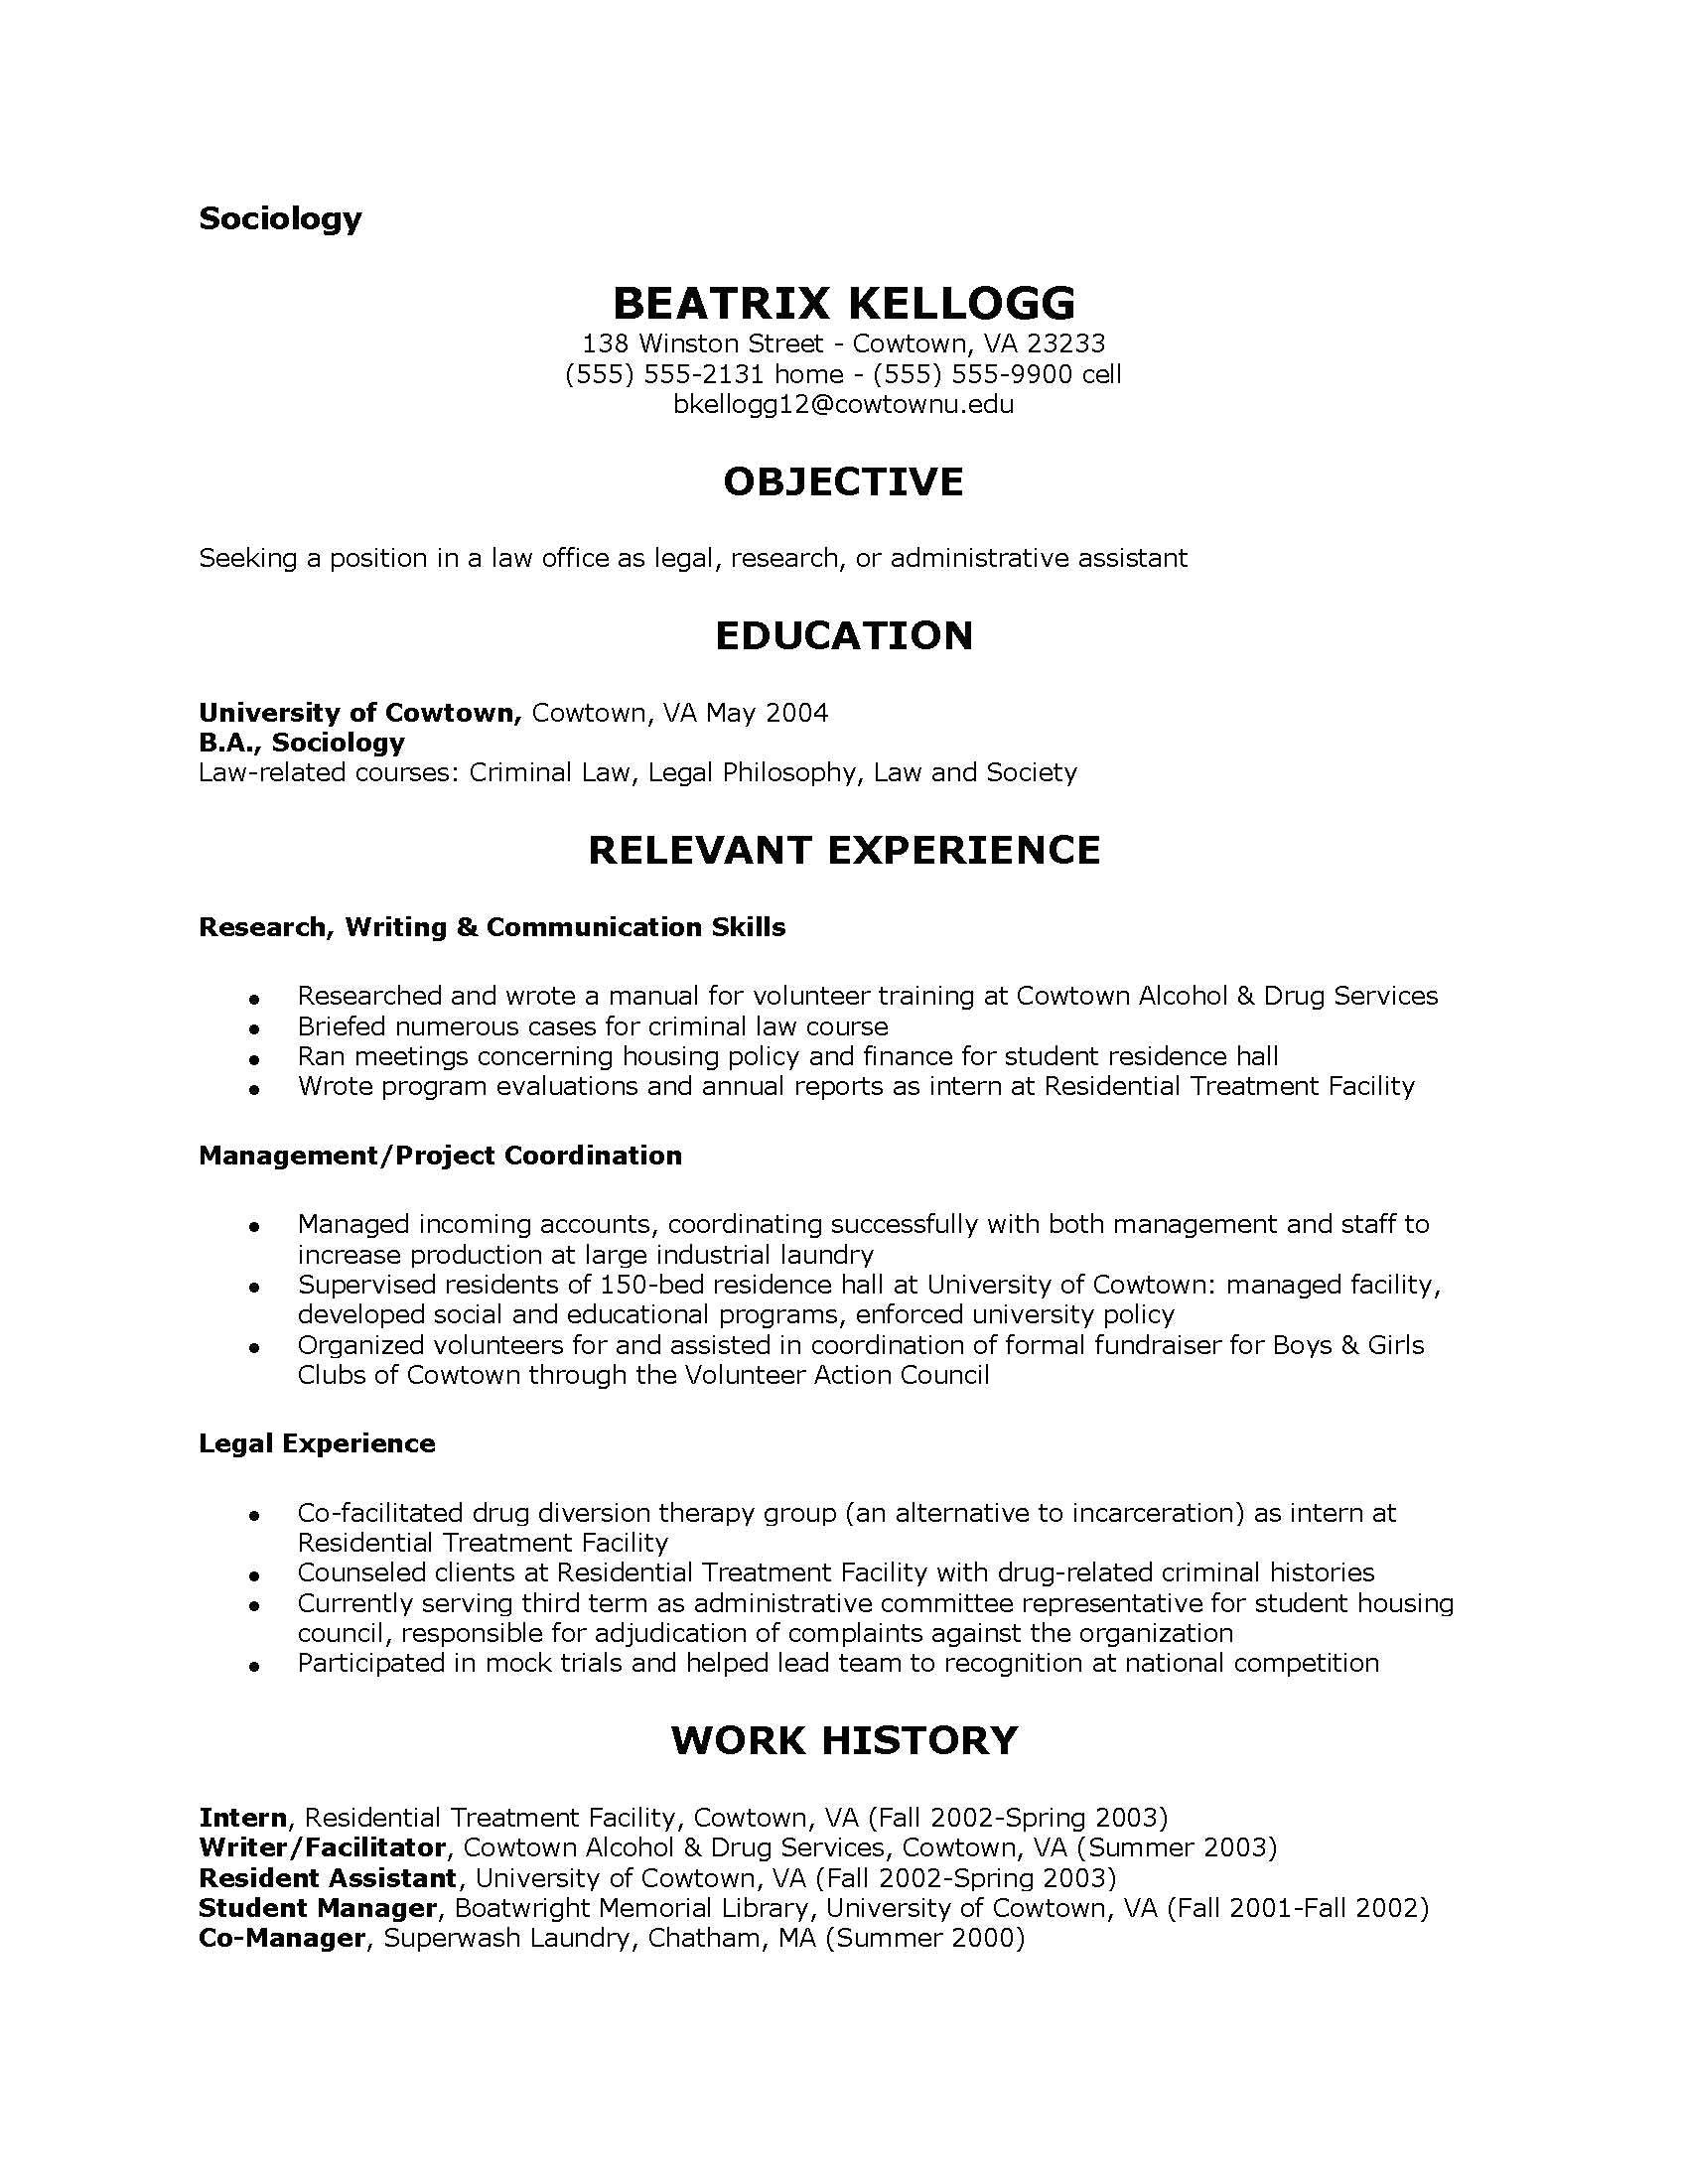 Resume Templates for sociology Majors sociology Resume Examples Examples Of Resumes